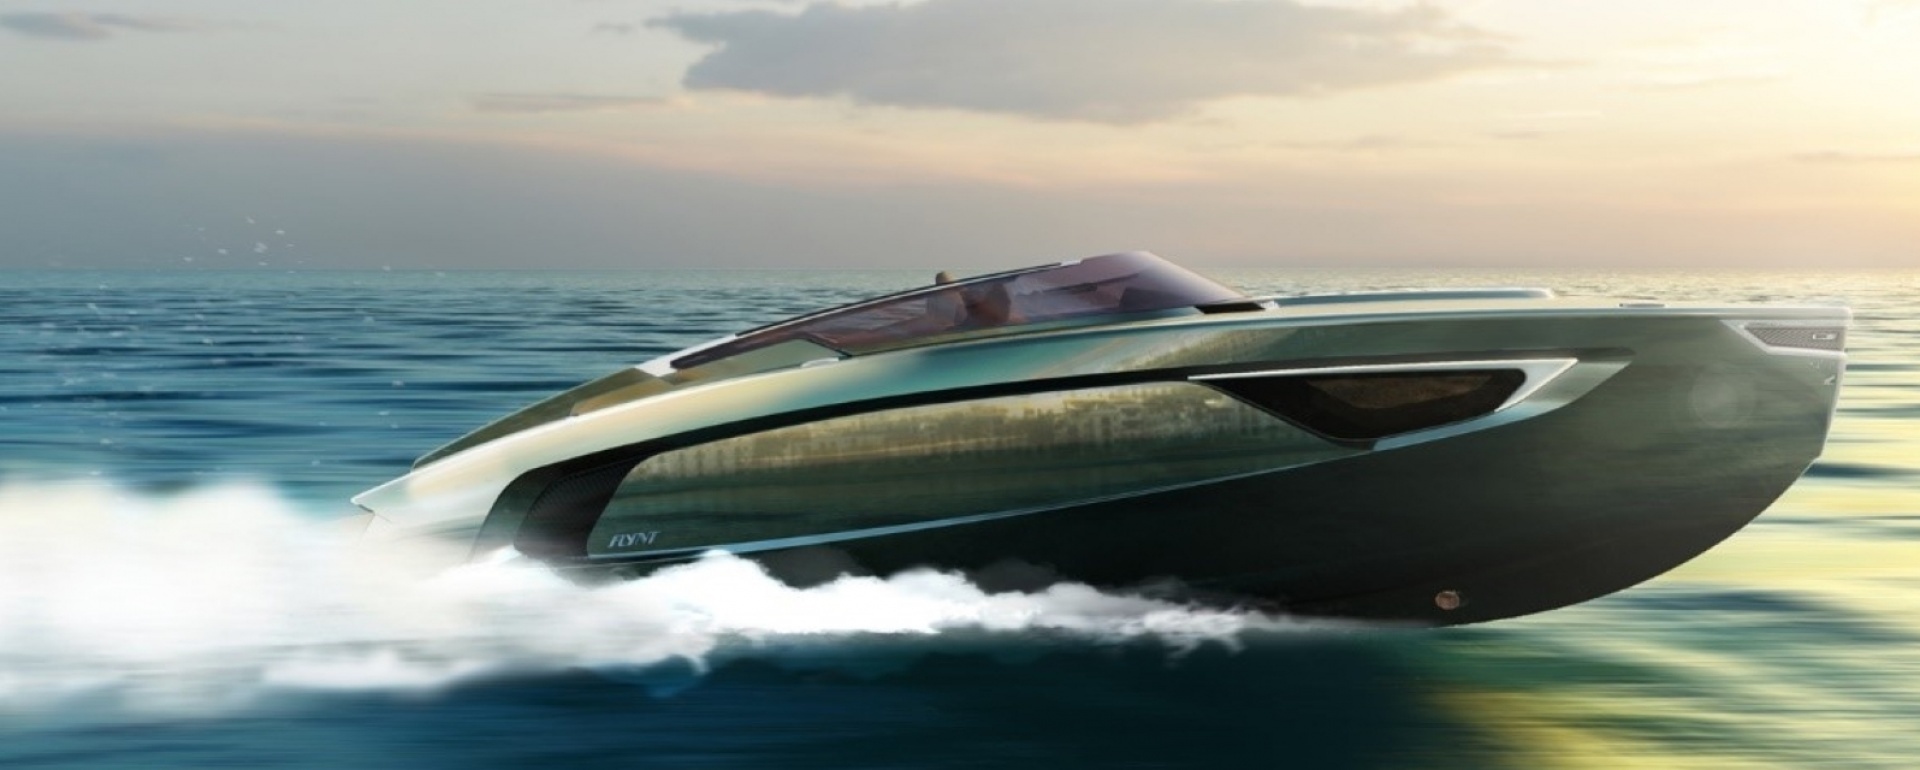 The composite engineering of a unique sport boat: meet the Flynt 956 Nova!